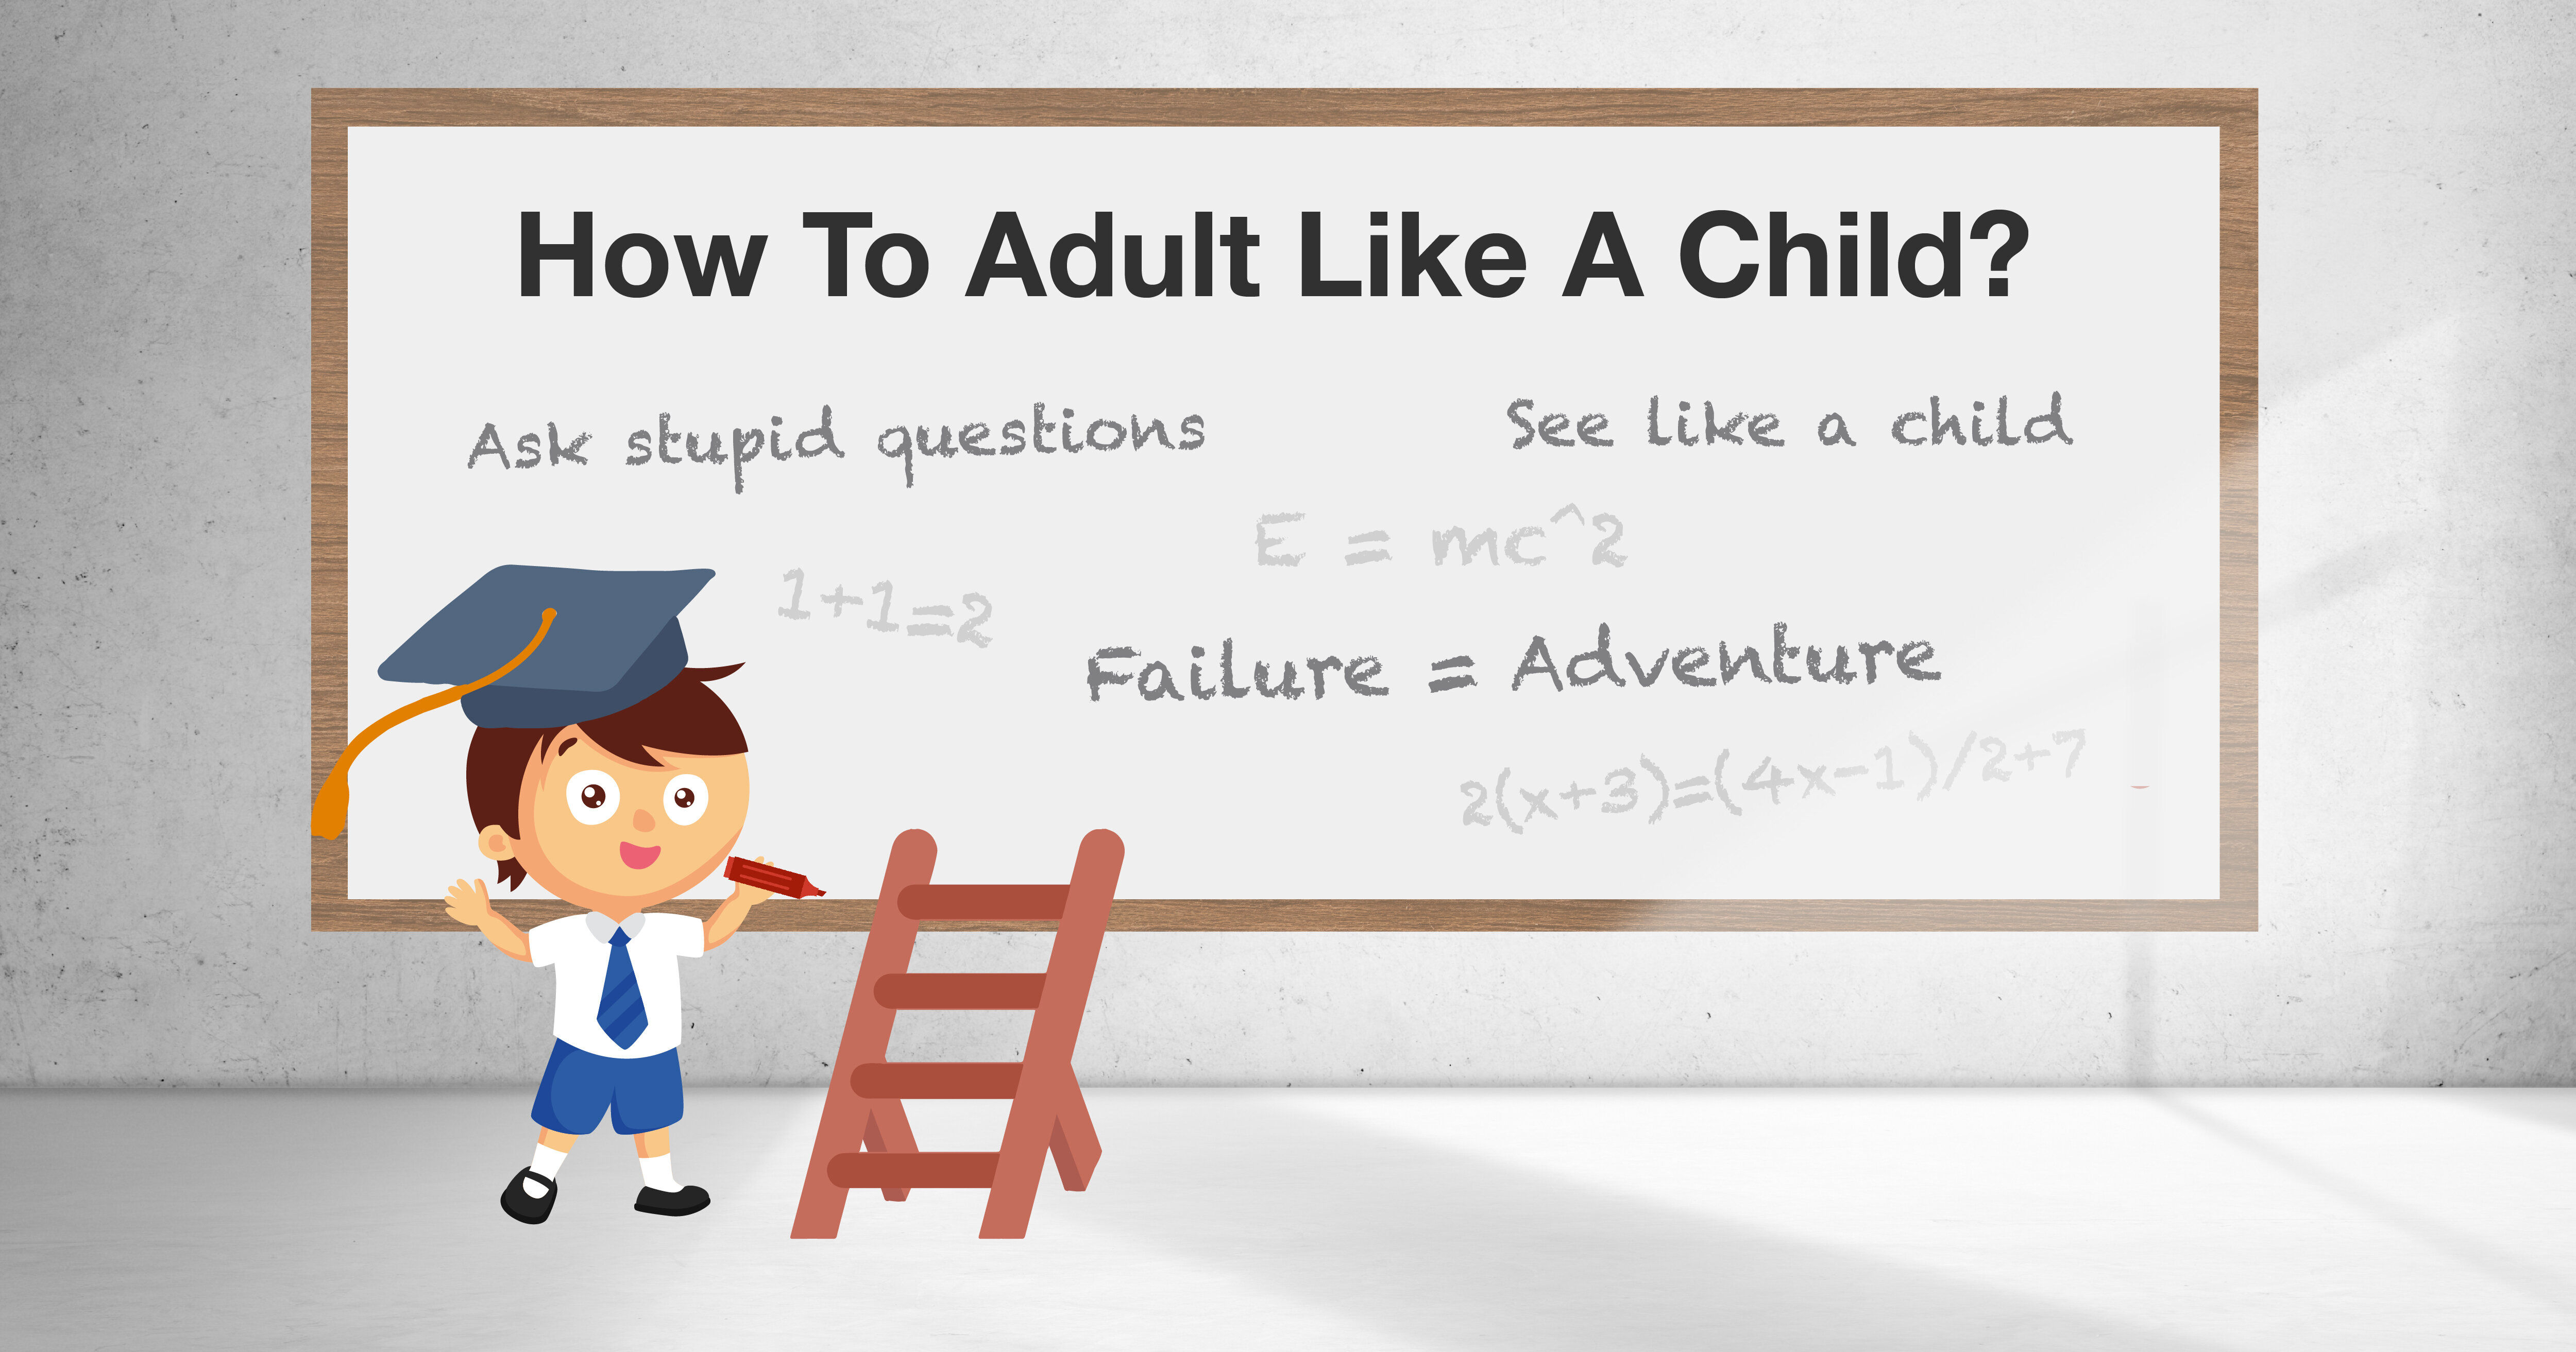 What I Learnt From Children About Adulting